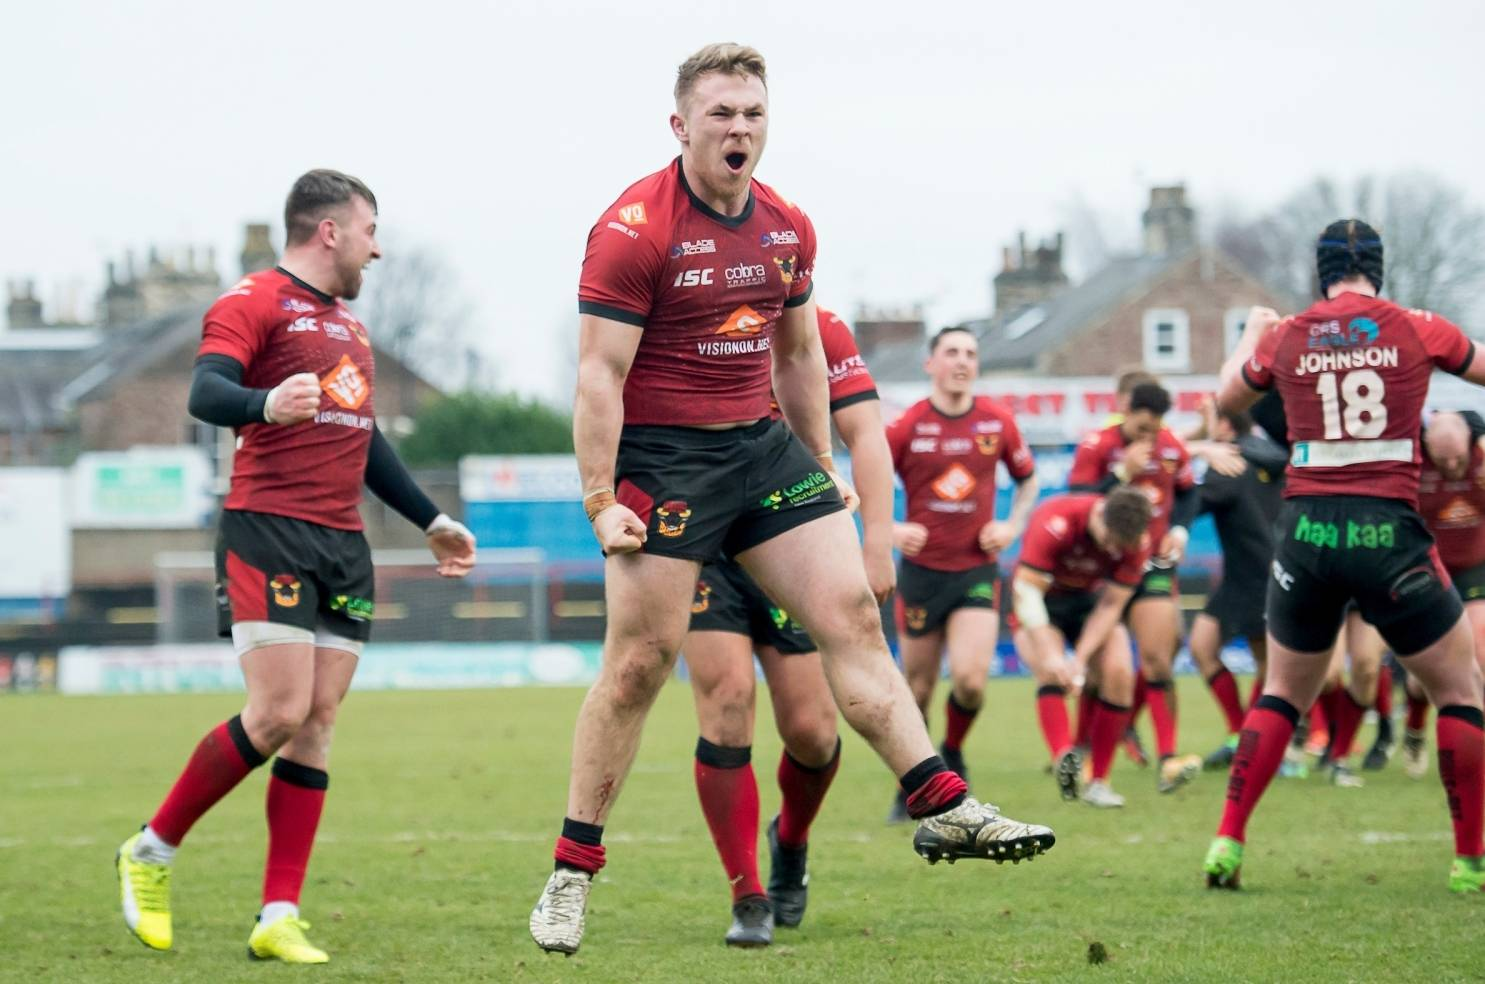 Betfred League 1 Round 1 wrap-up